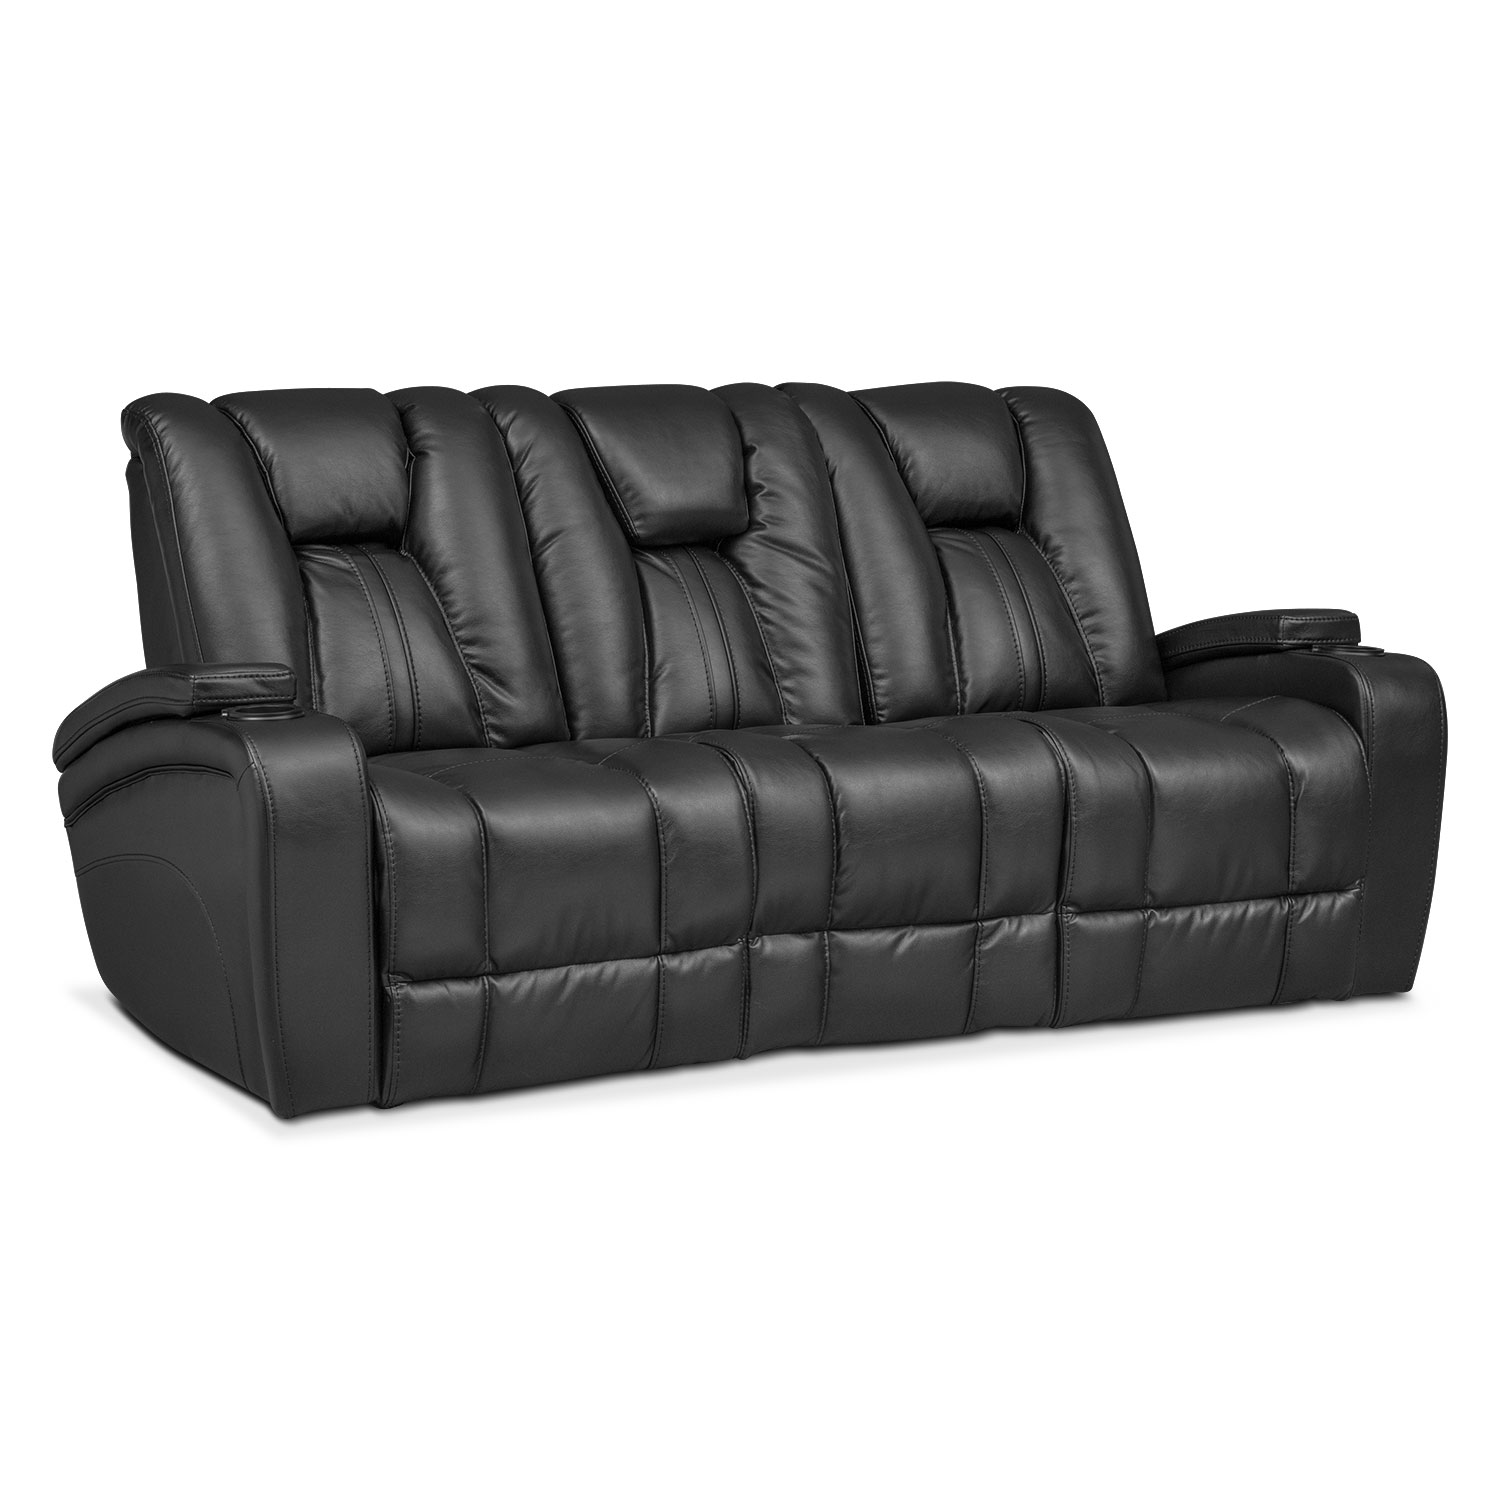 Living Room Furniture - Pulsar Dual Power Reclining Sofa - Black